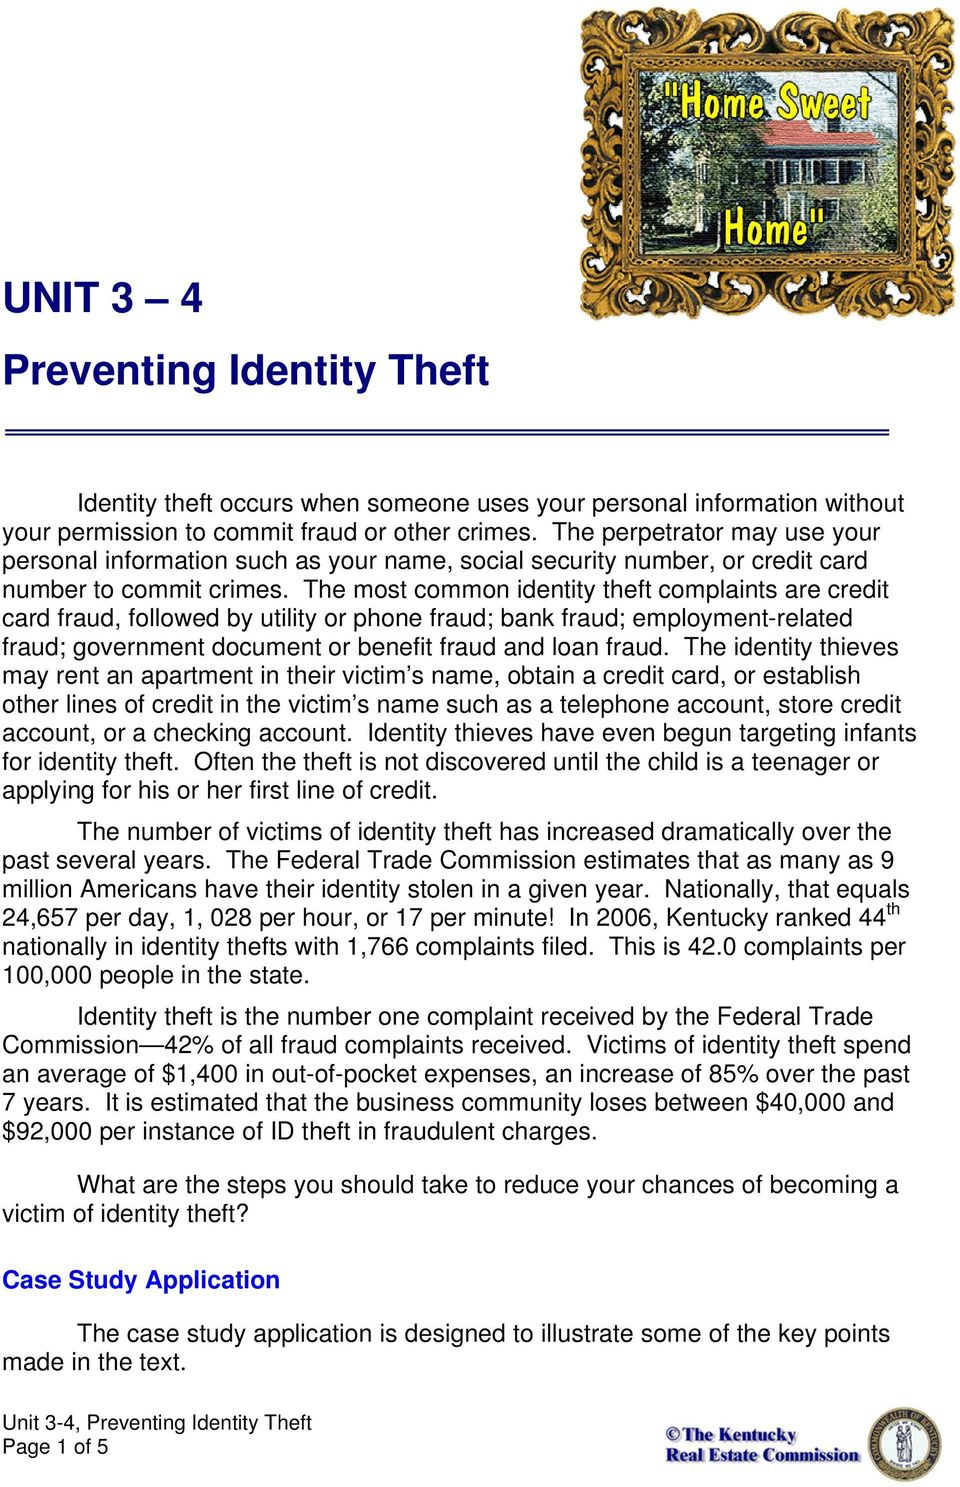 The most common identity theft complaints are credit card fraud, followed by utility or phone fraud; bank fraud; employment-related fraud; government document or benefit fraud and loan fraud.